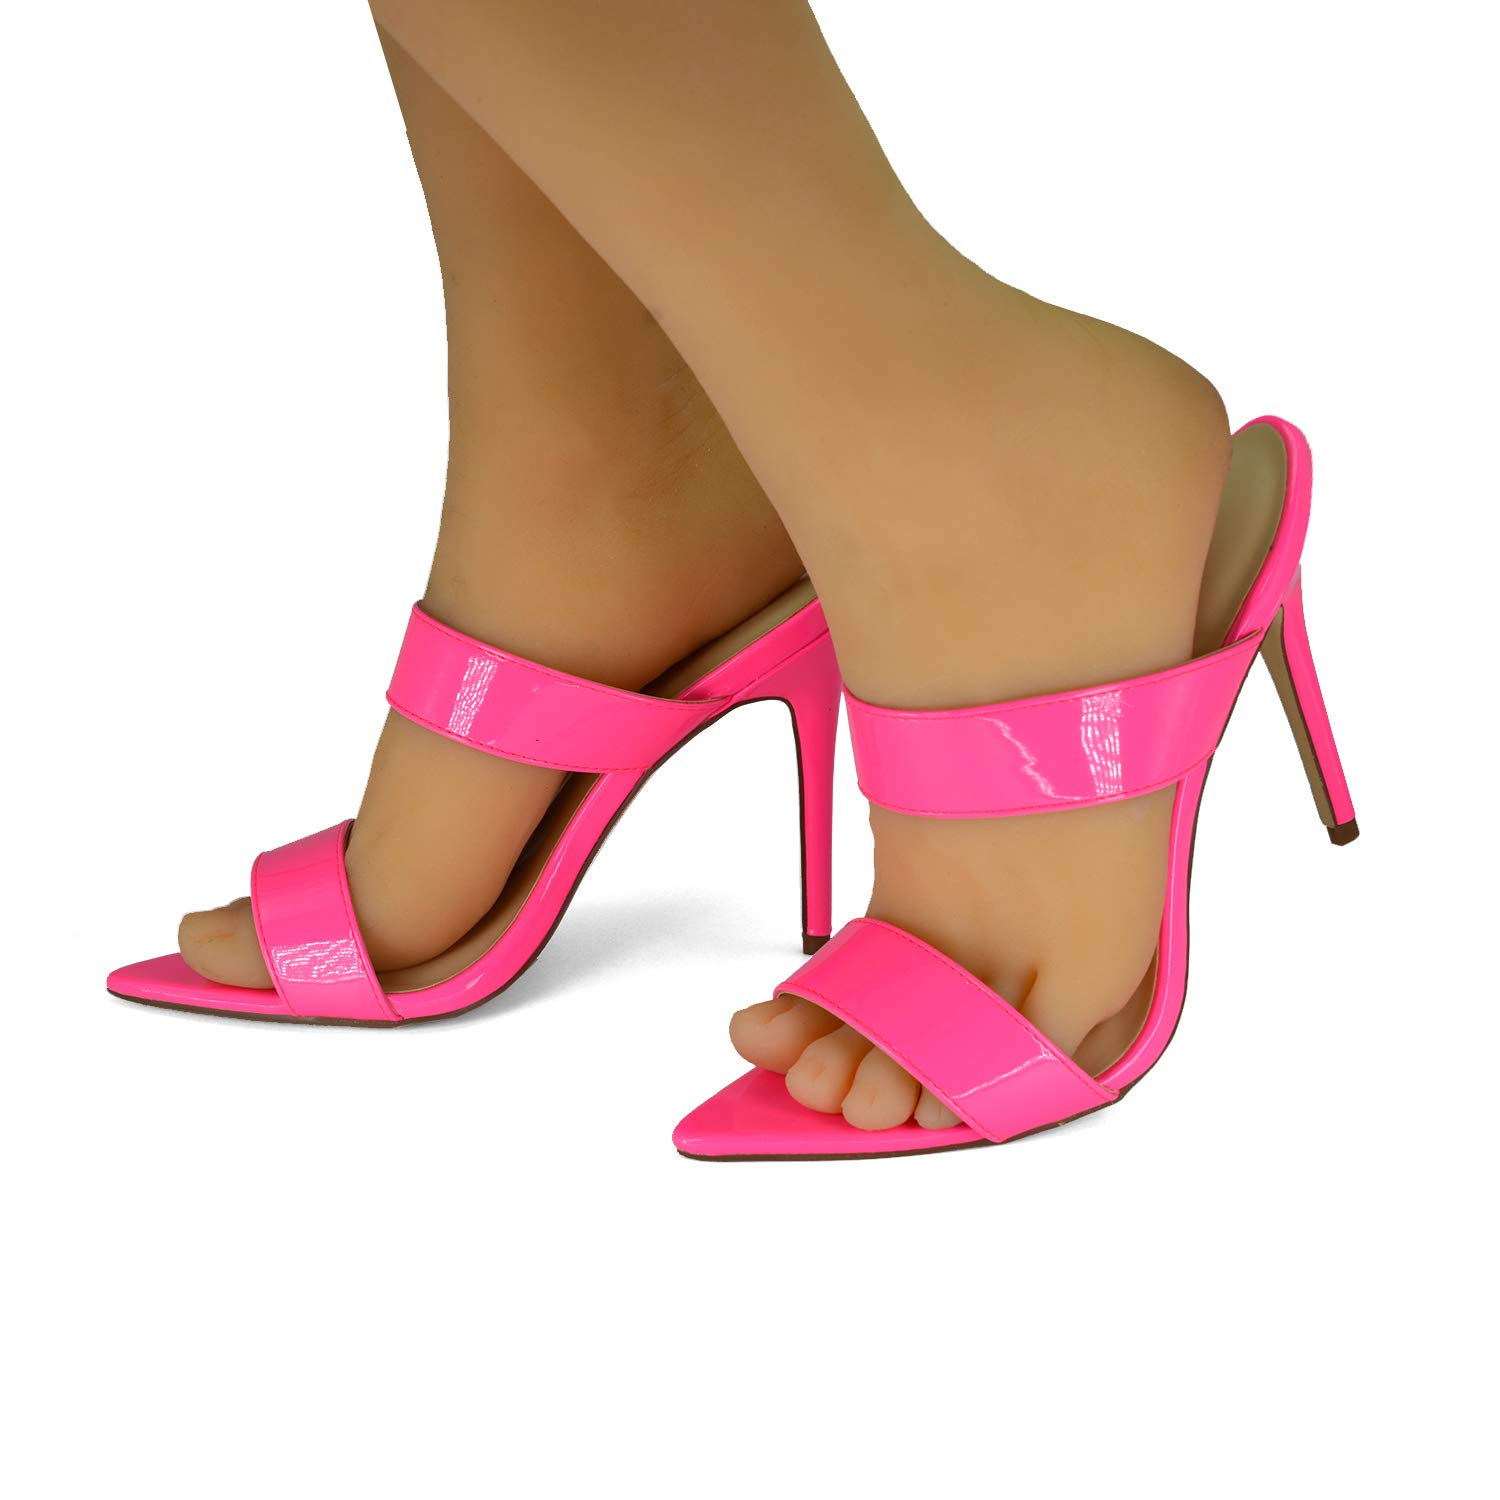 17ff37c610e4a Anne Michelle Womens Pointy Toe Stiletto Heel Double Band Mules Pump  Sandals Shoes Size 5.5 Neon Pink